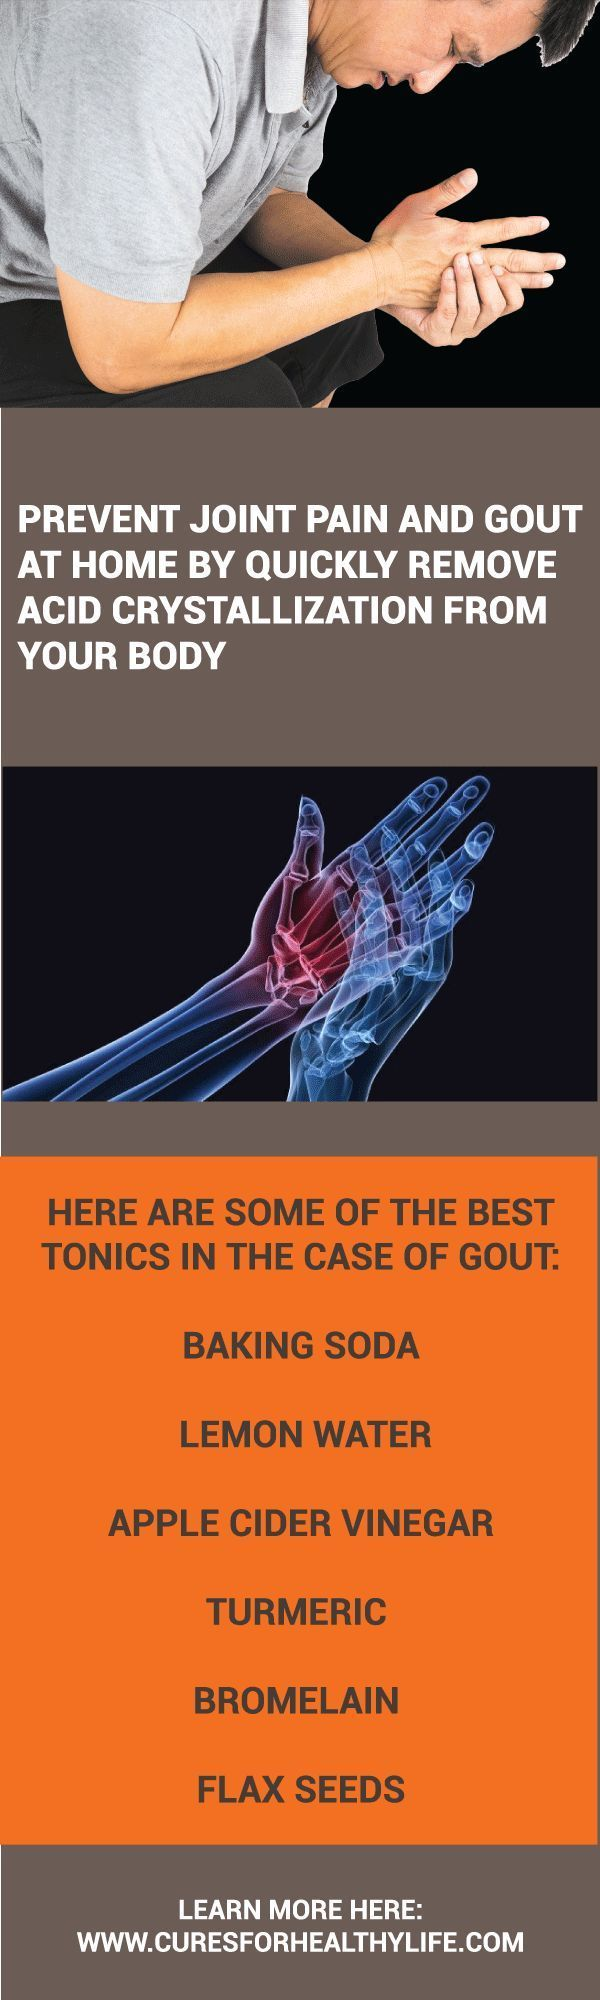 The uric acid crystallization can cause kidney failure arthritis gout and join